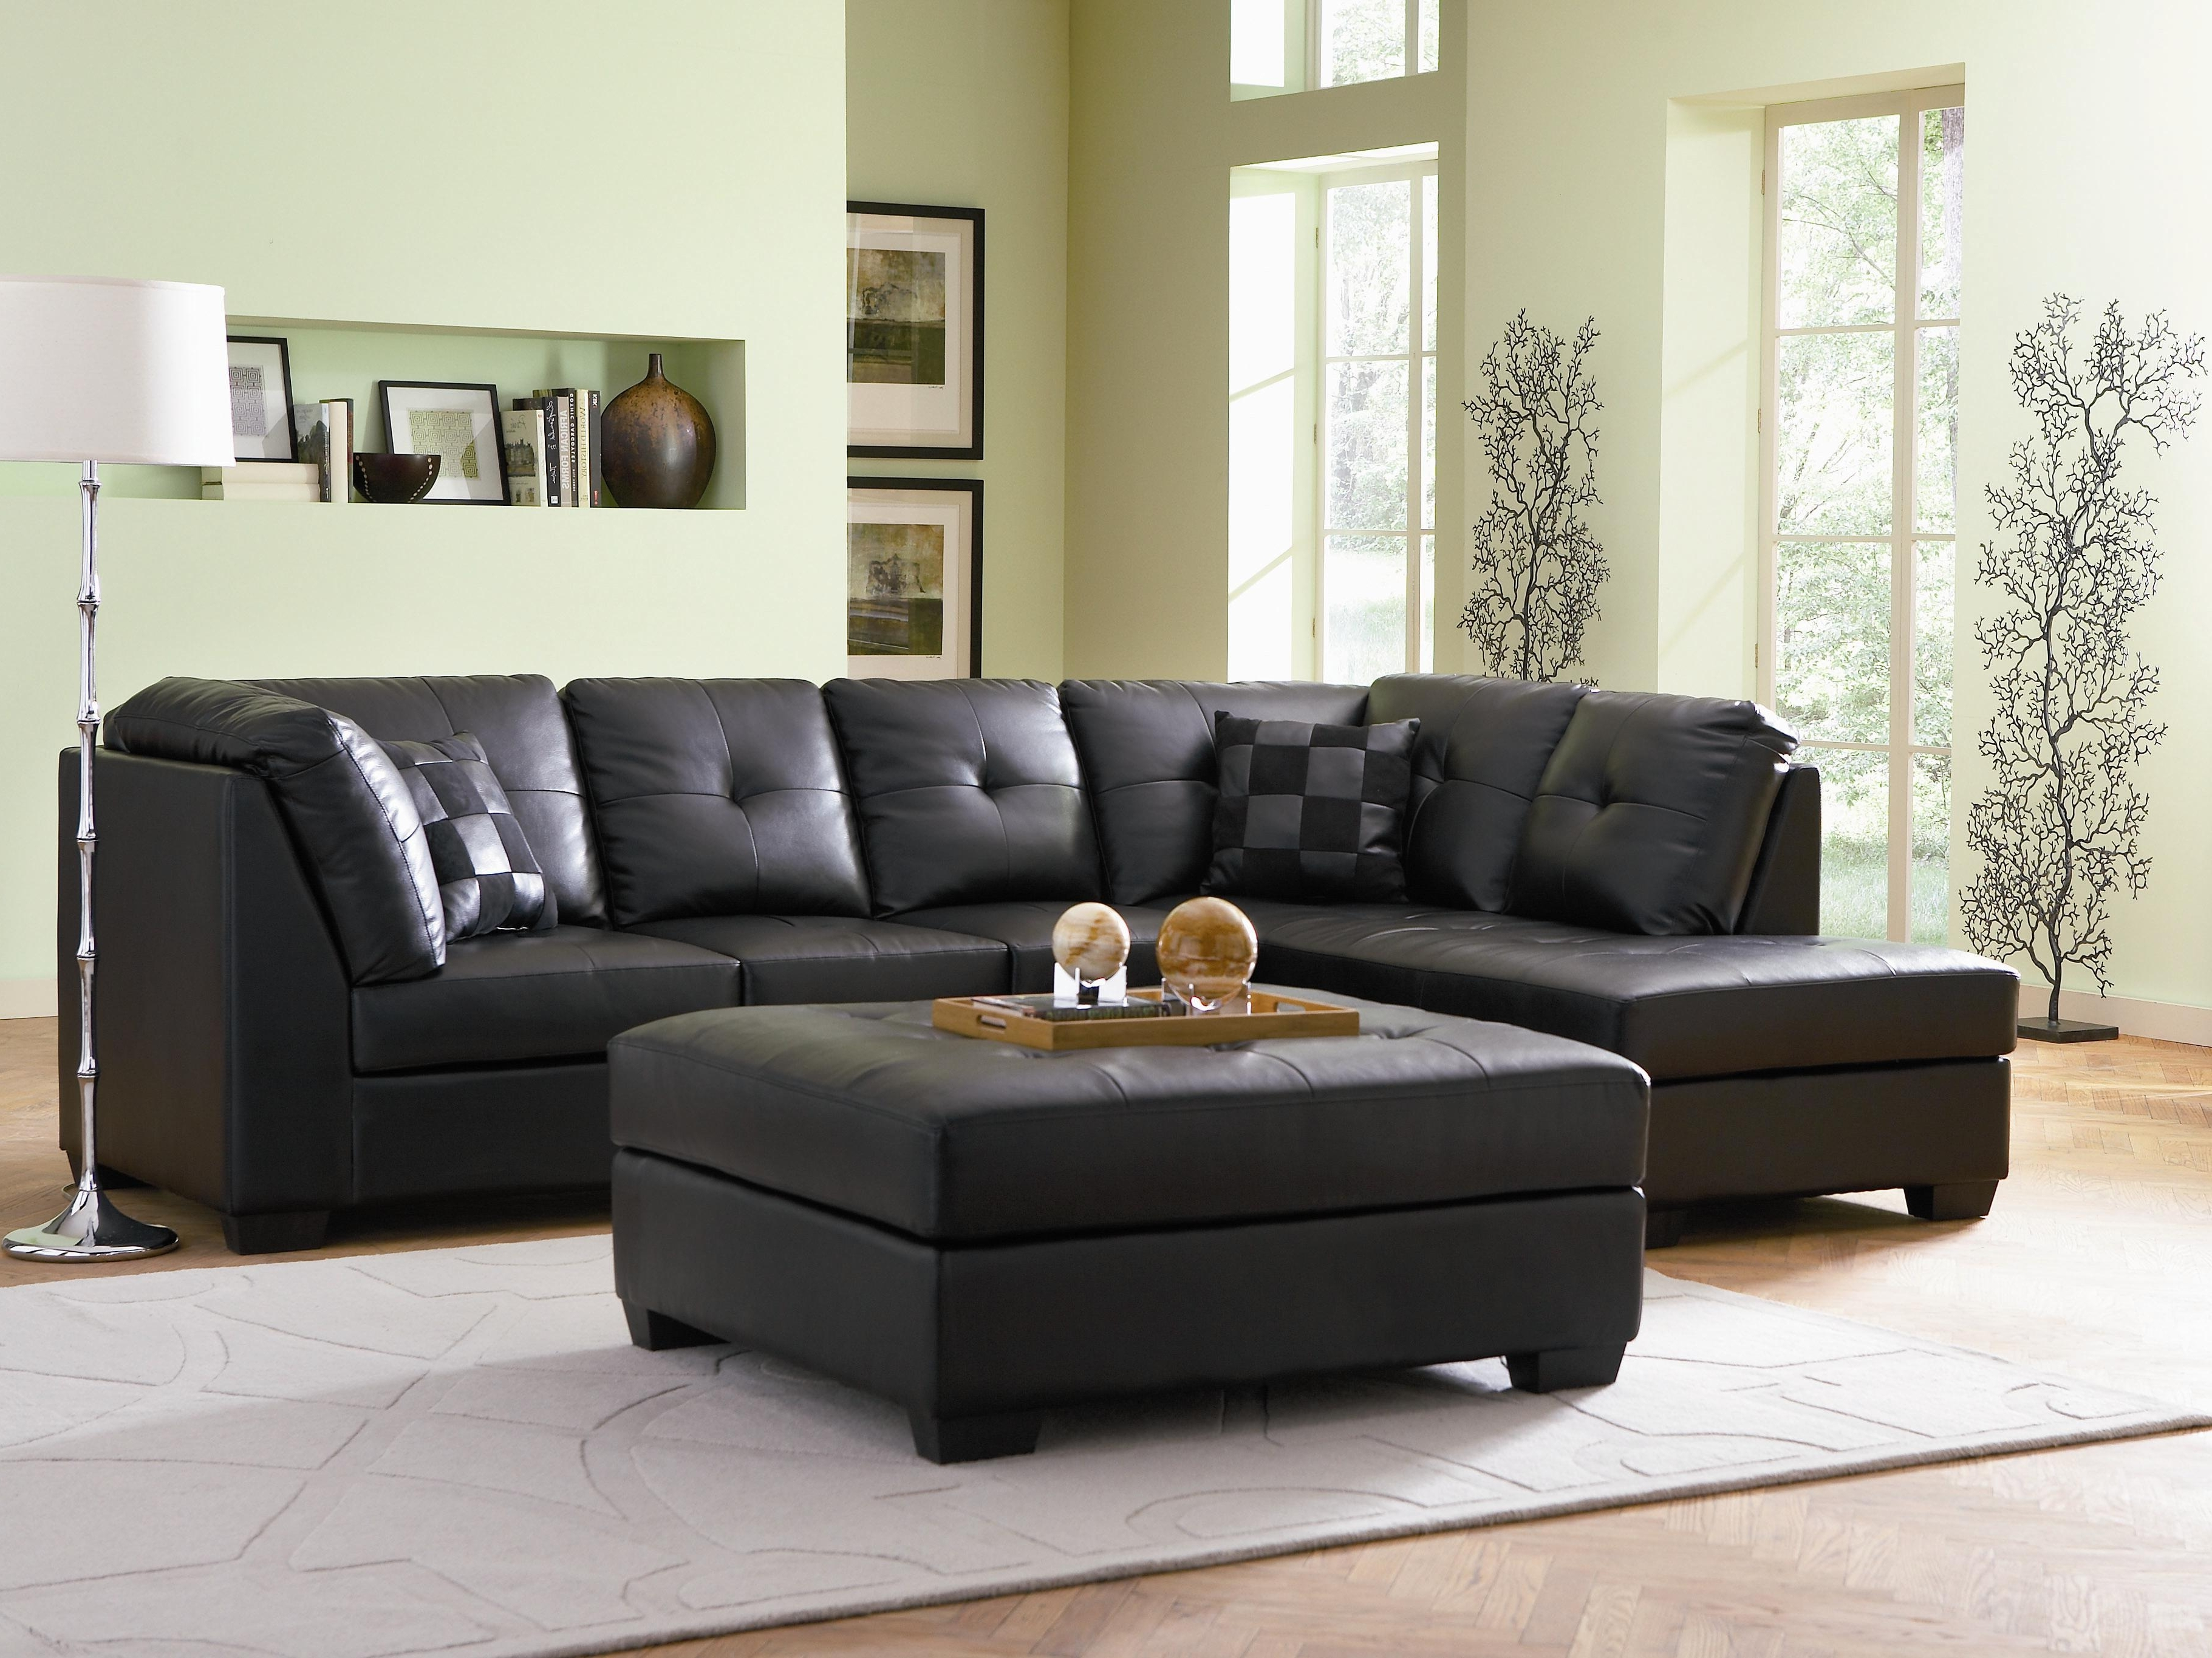 Sectional Sleeper Sofas With Ottoman Intended For Current Sofa : Bonded Leather Sectional Sleeper Sofa White Leather (View 11 of 15)